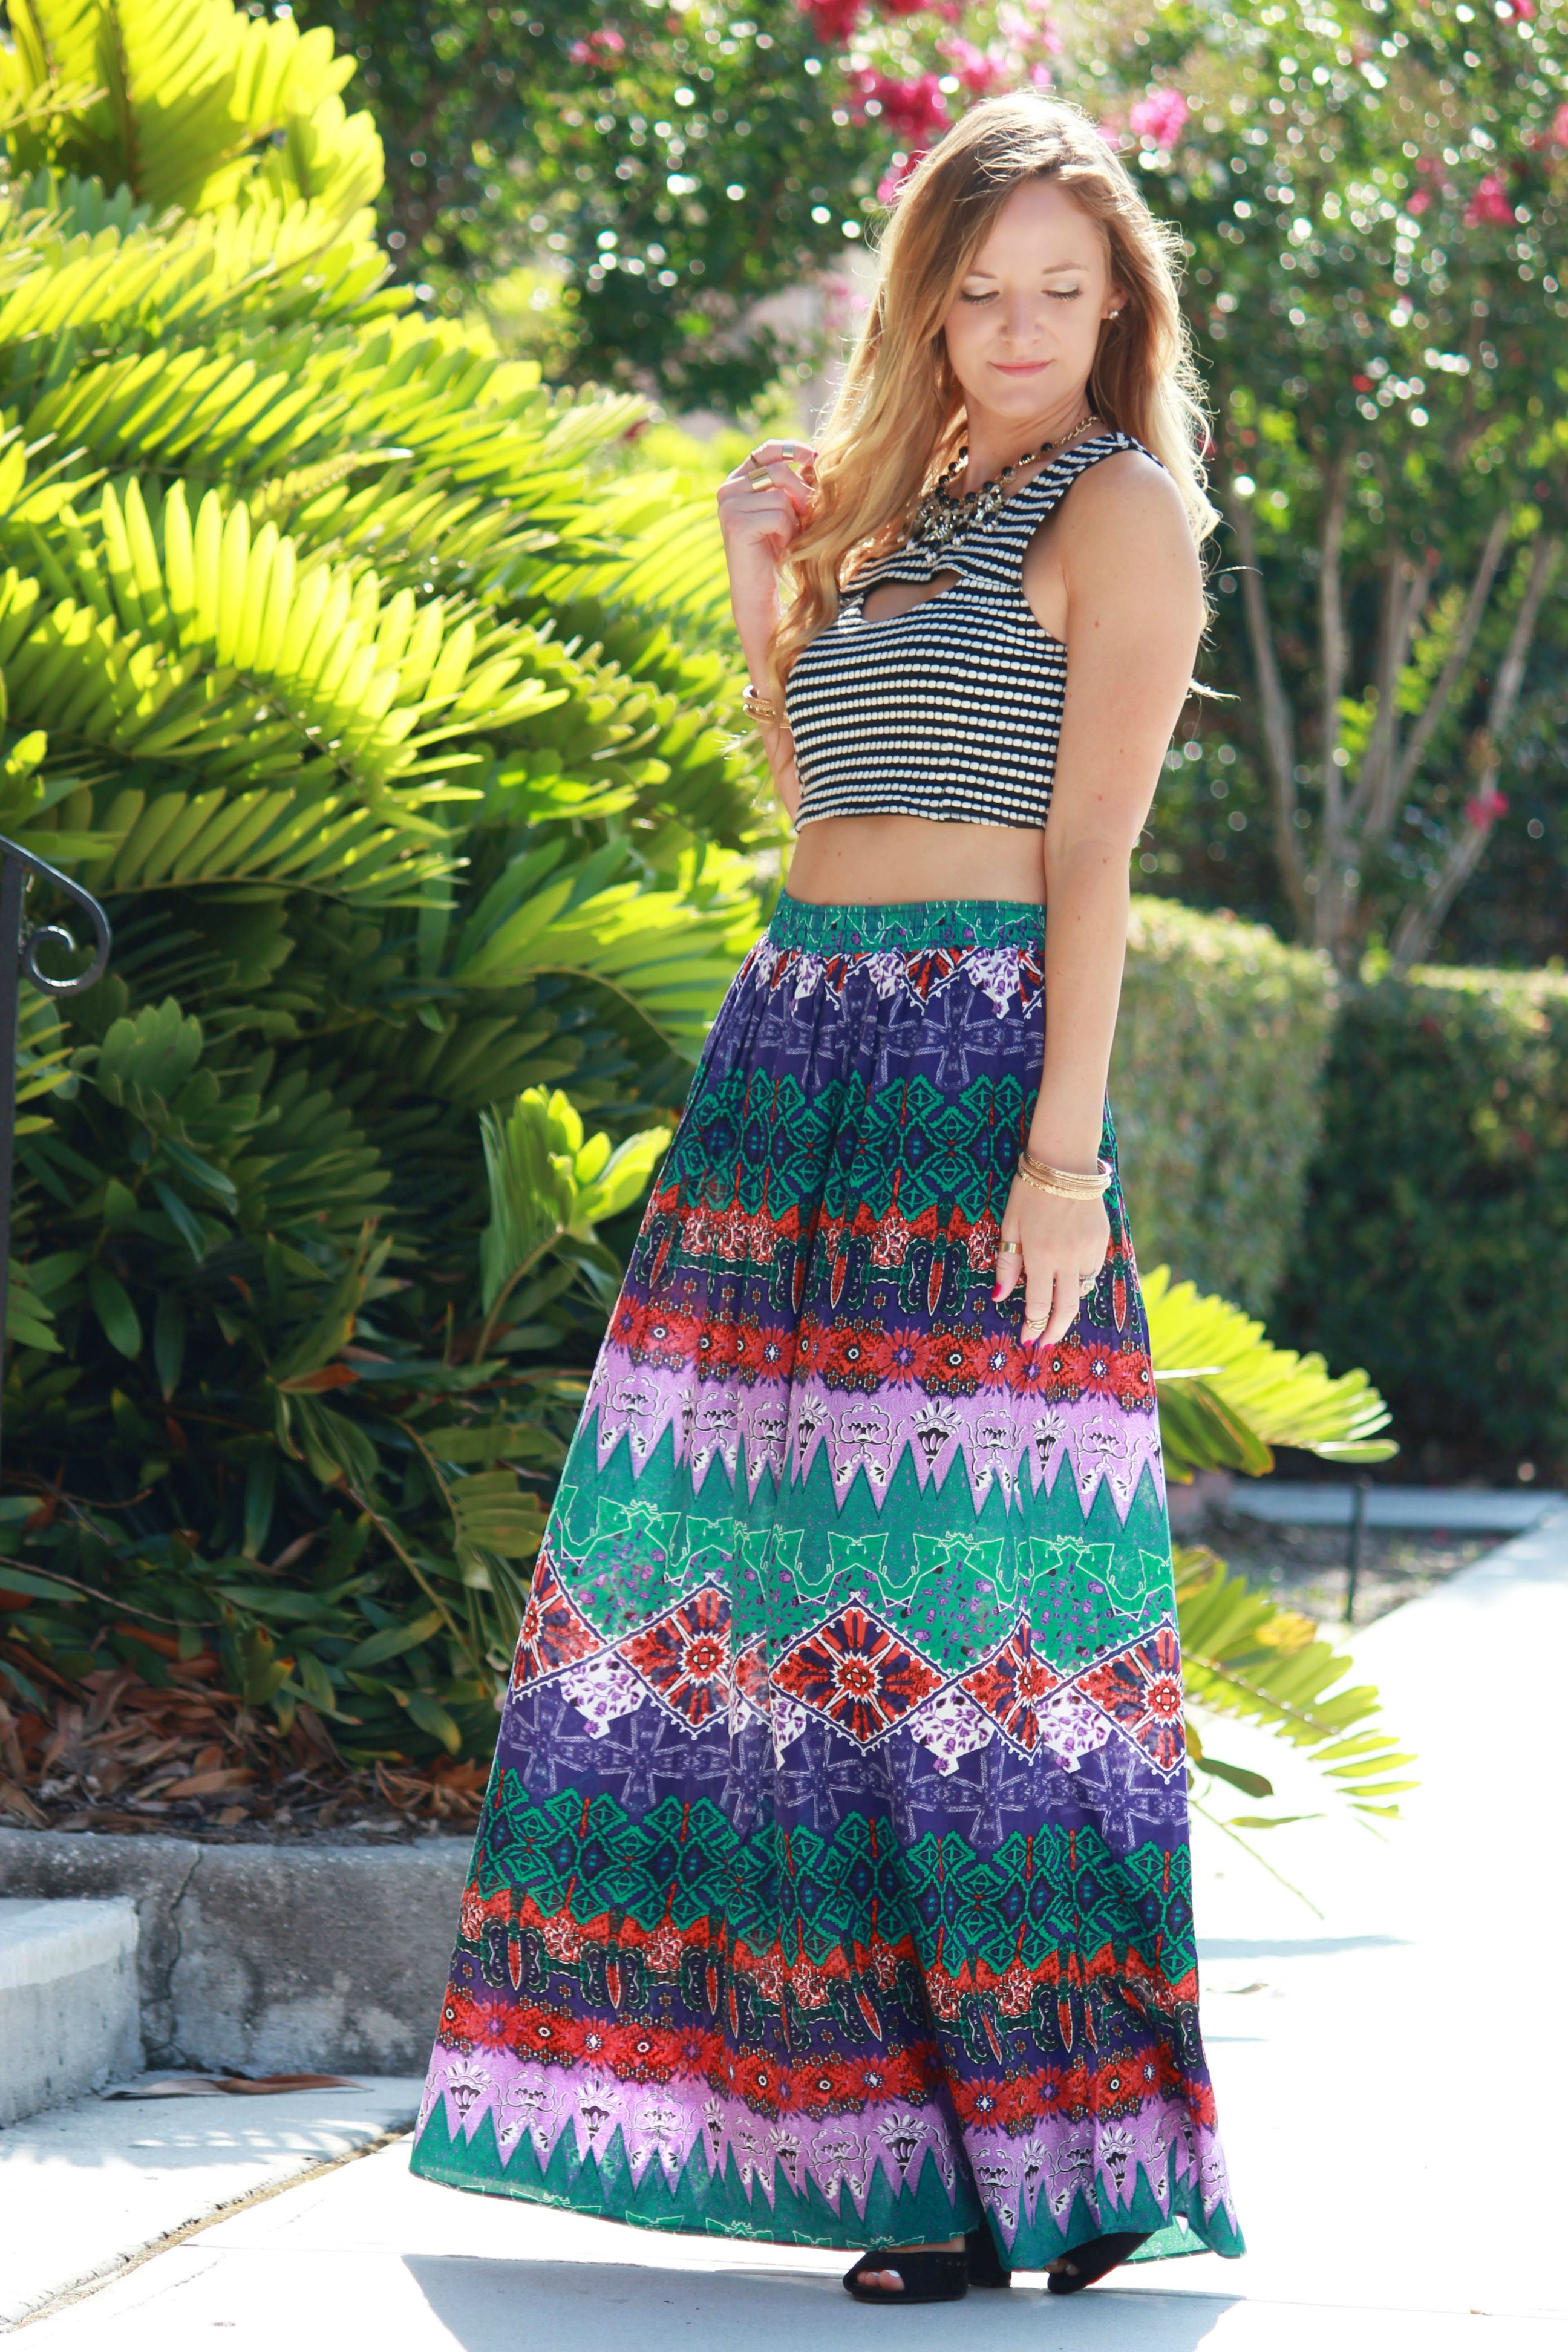 Gypsy Skirts Outfits (16)